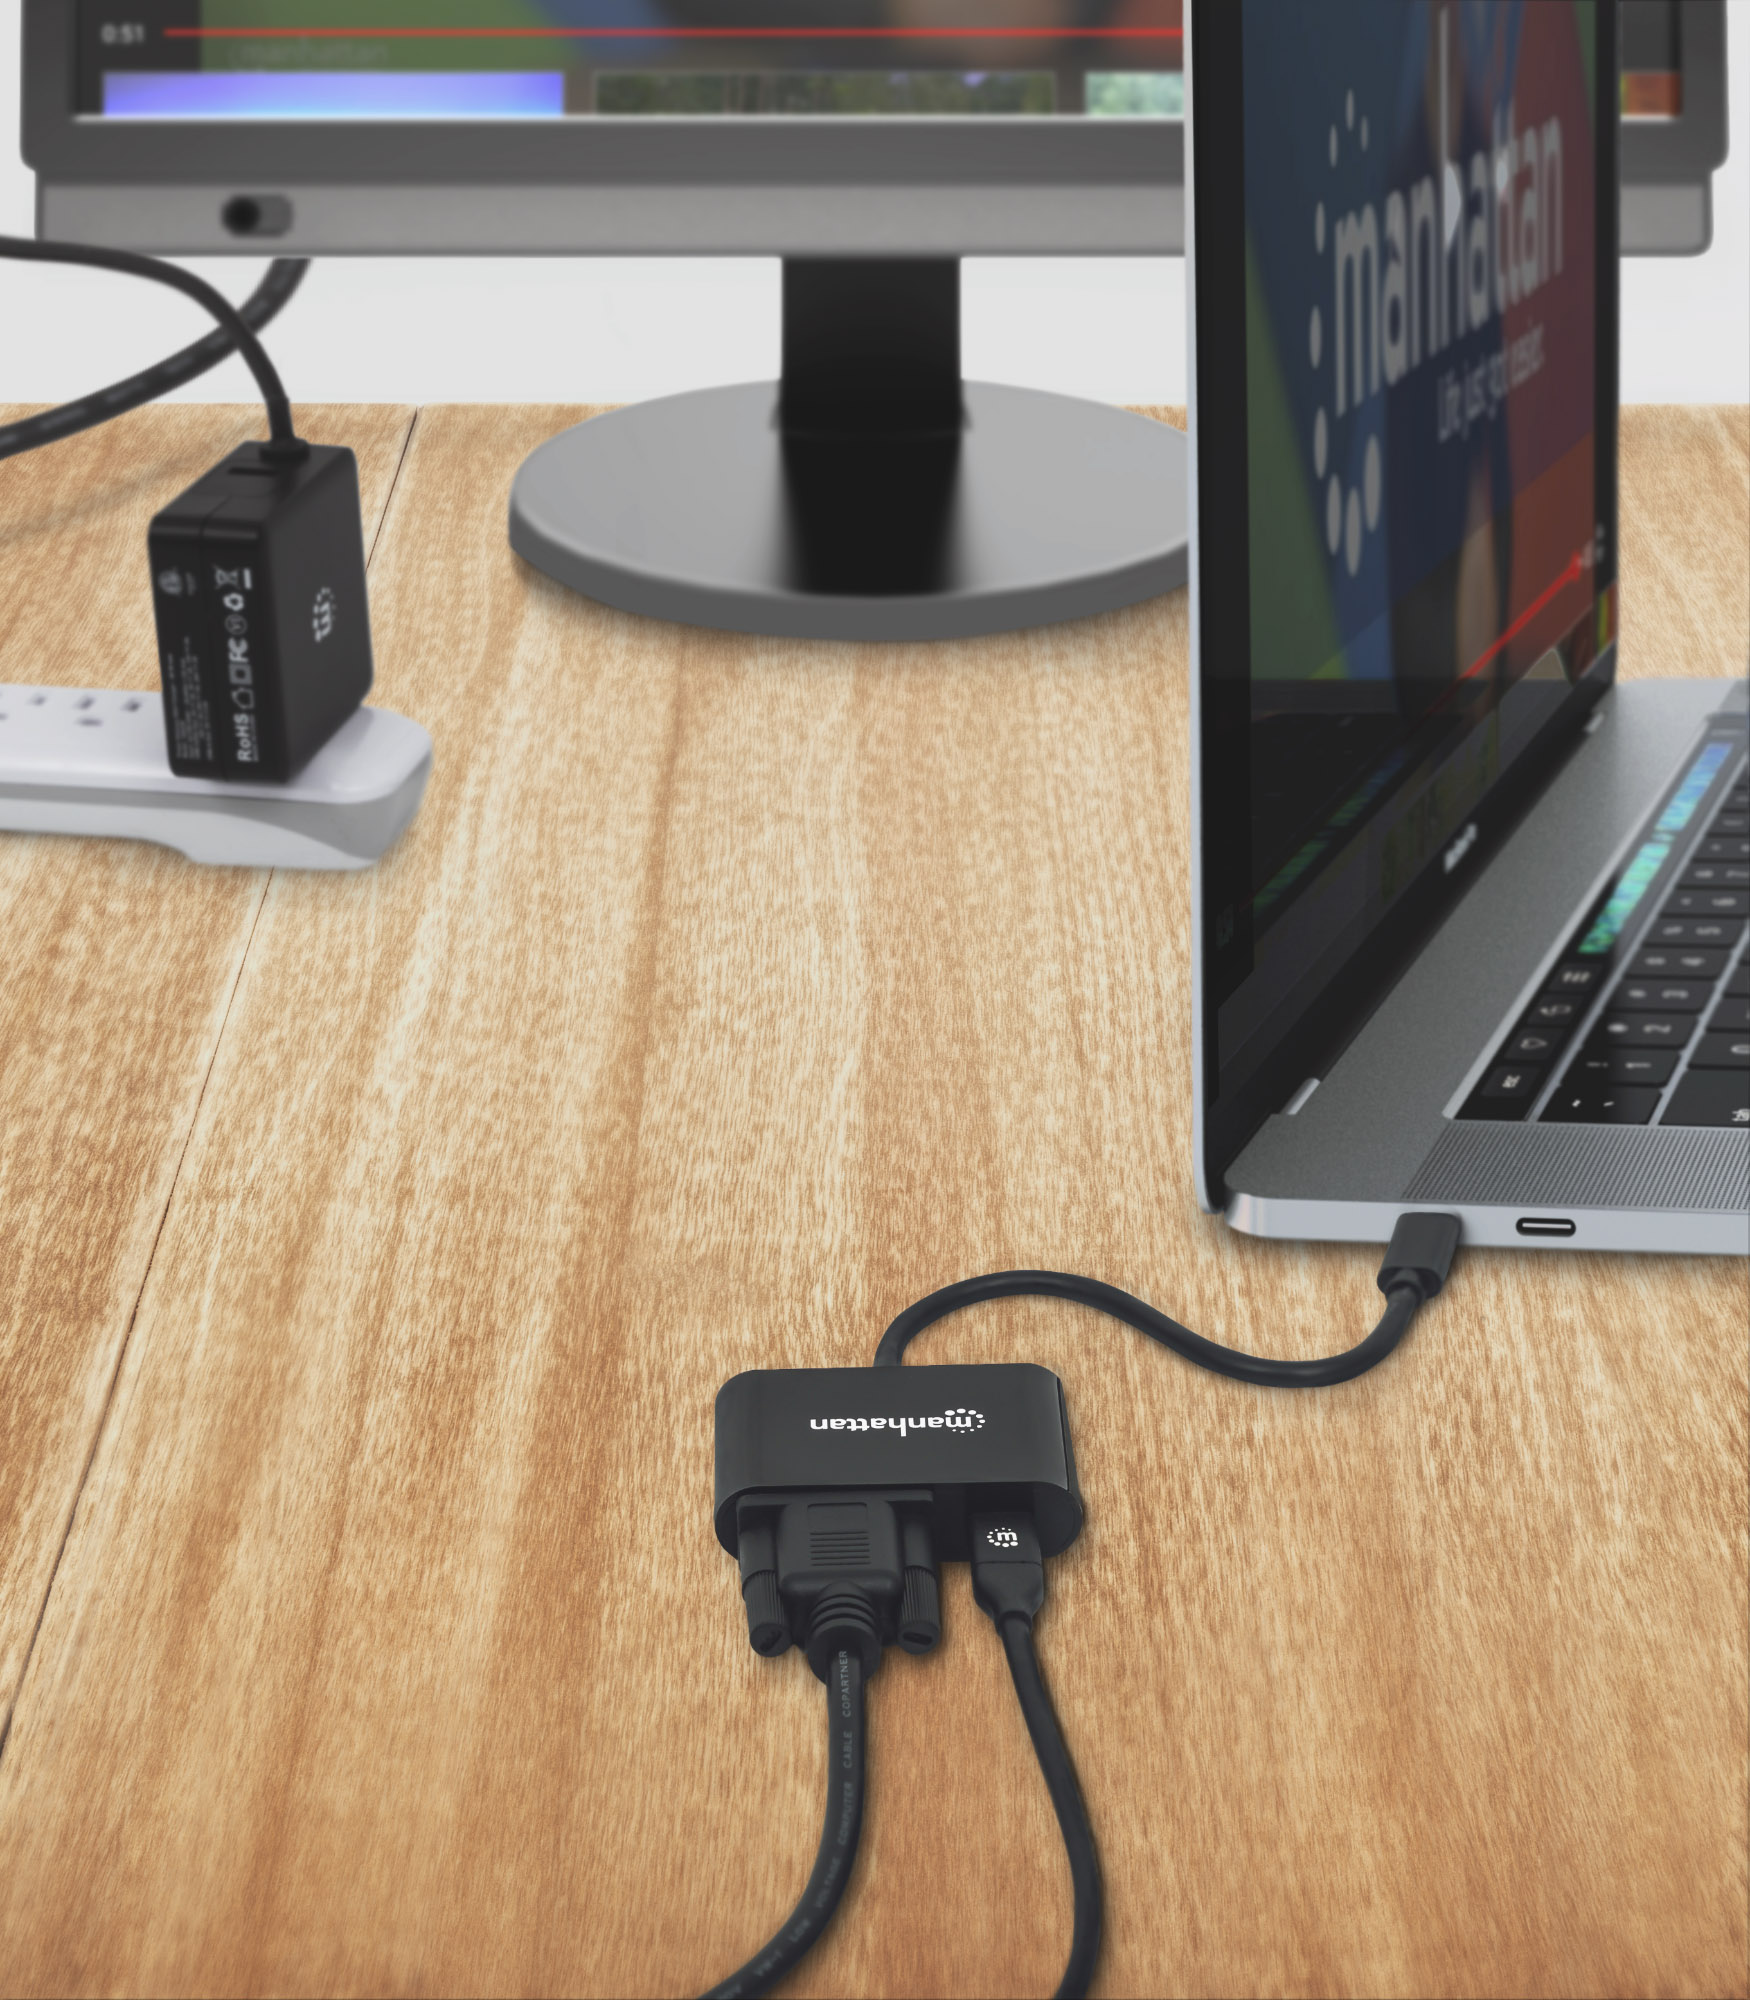 USB-C to VGA Converter with Power Delivery Port